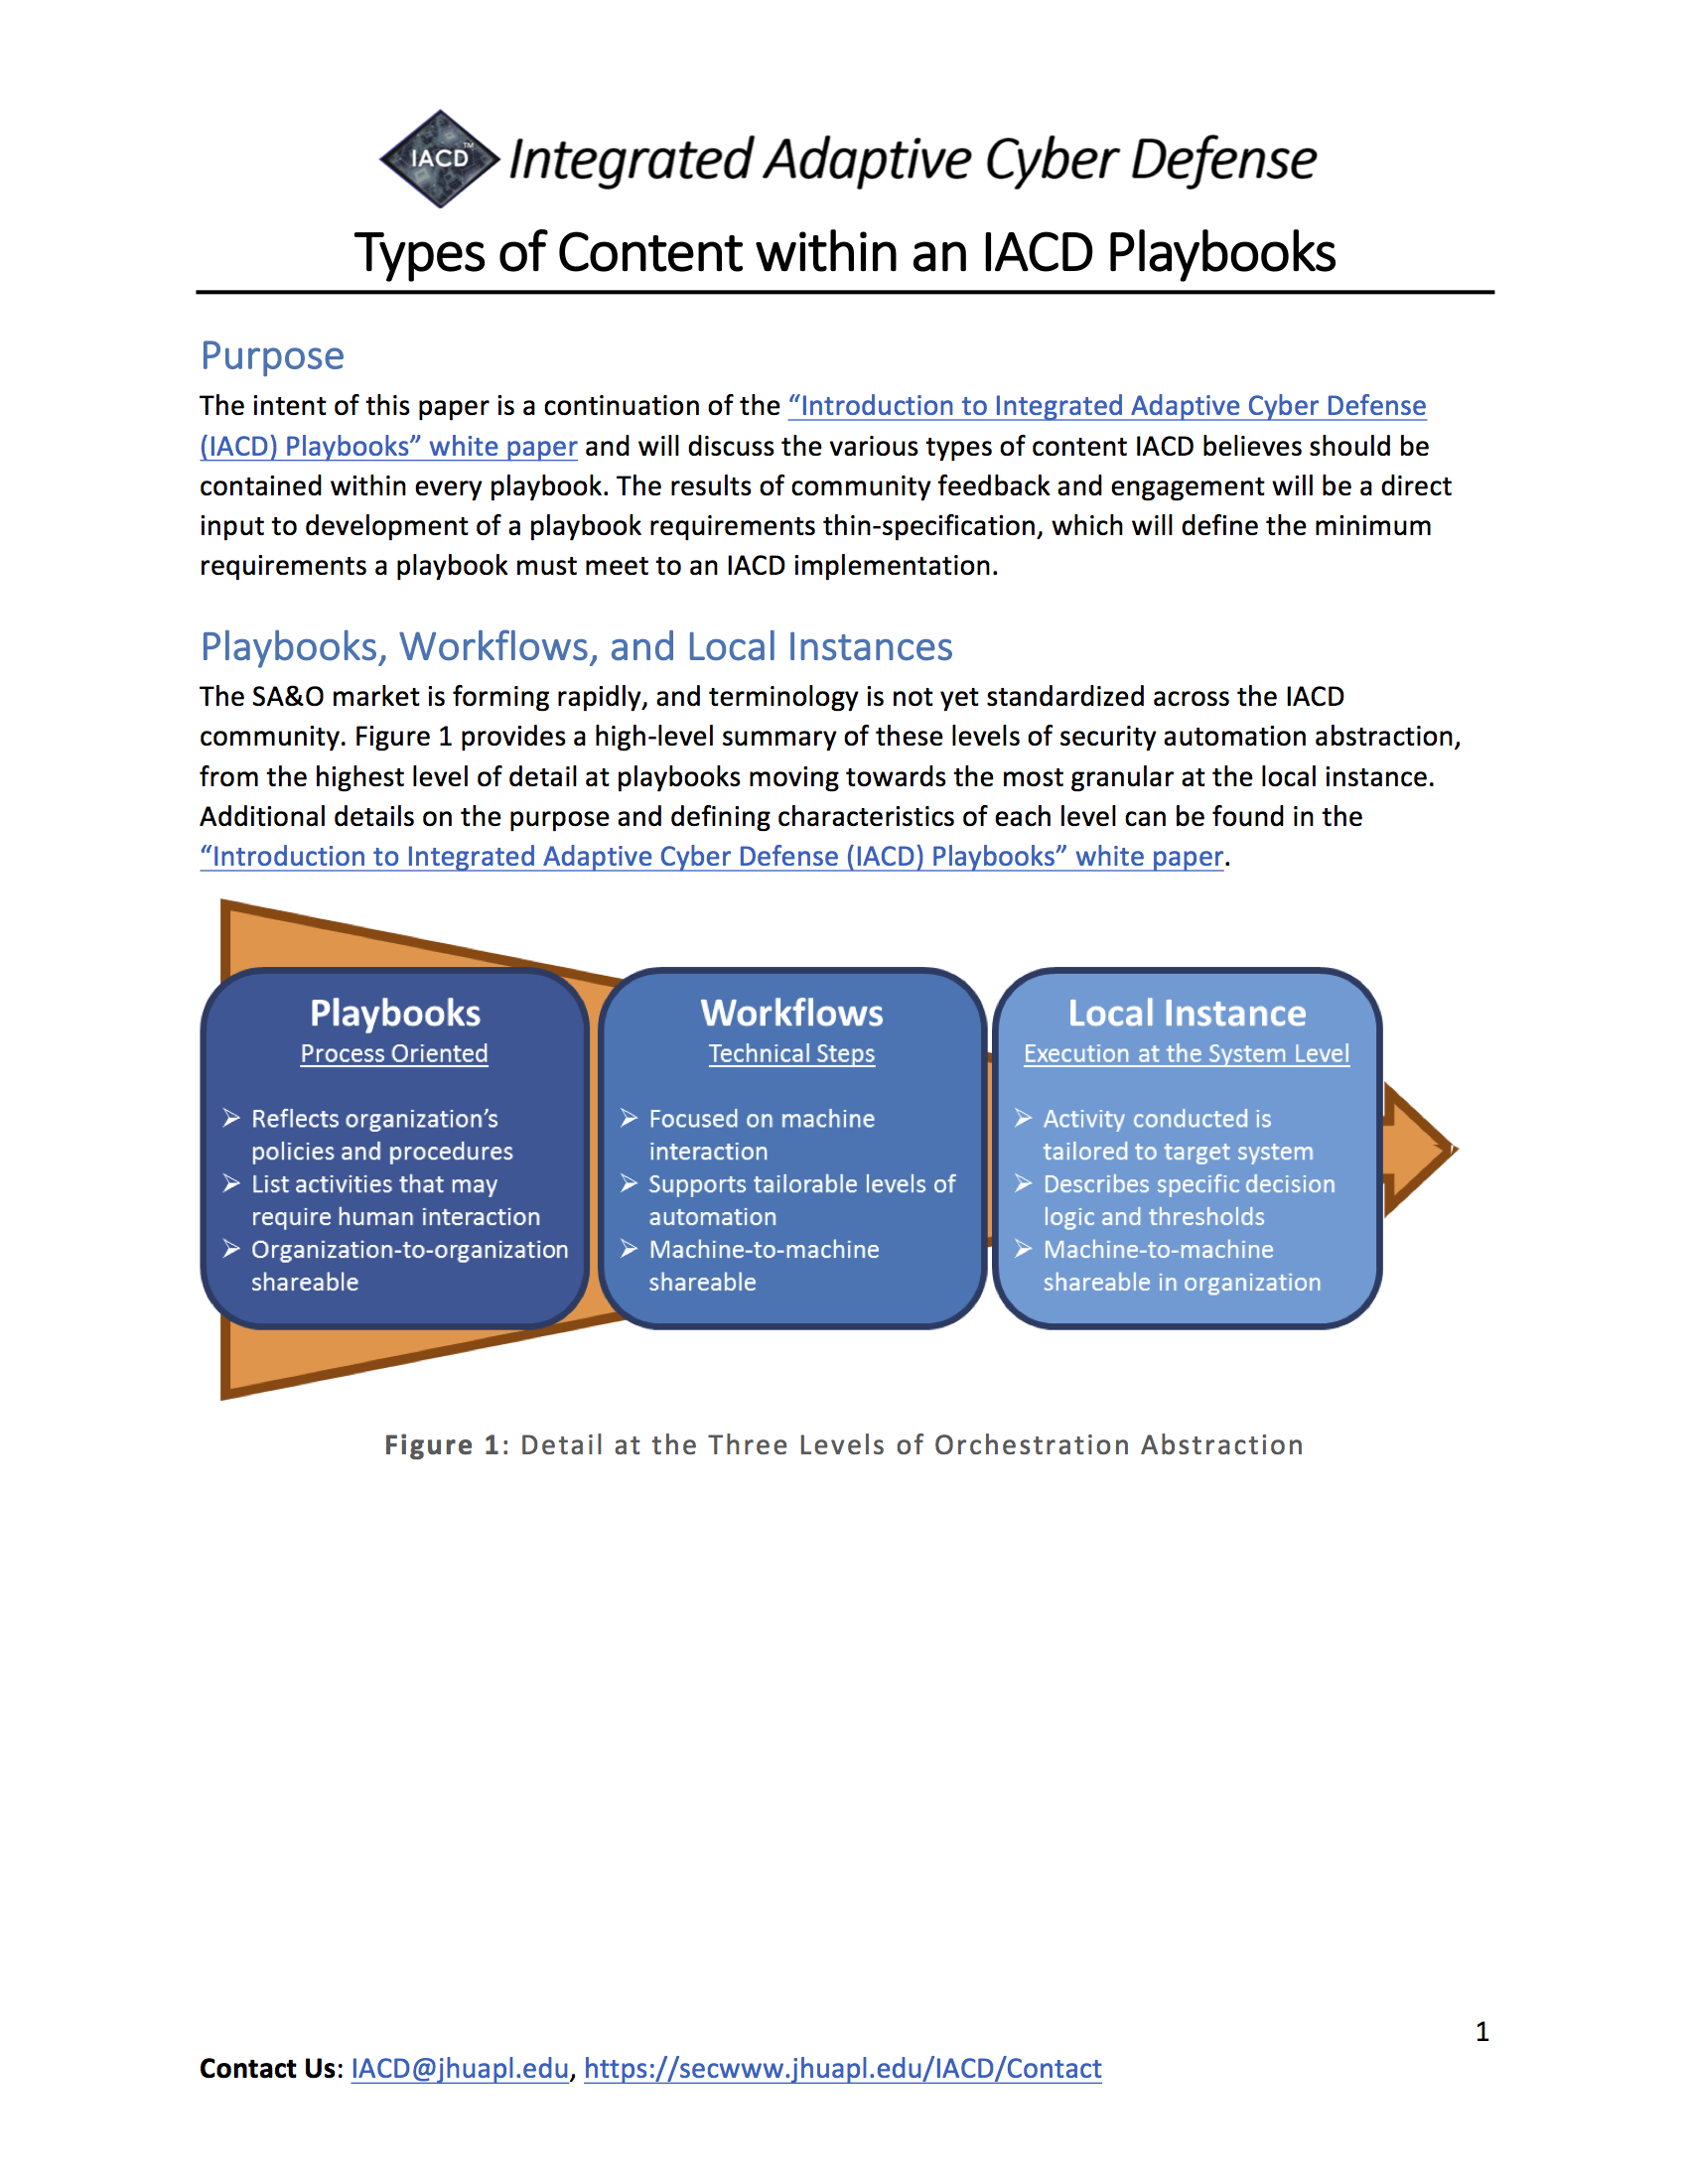 Types of Content in an IACD Playbook